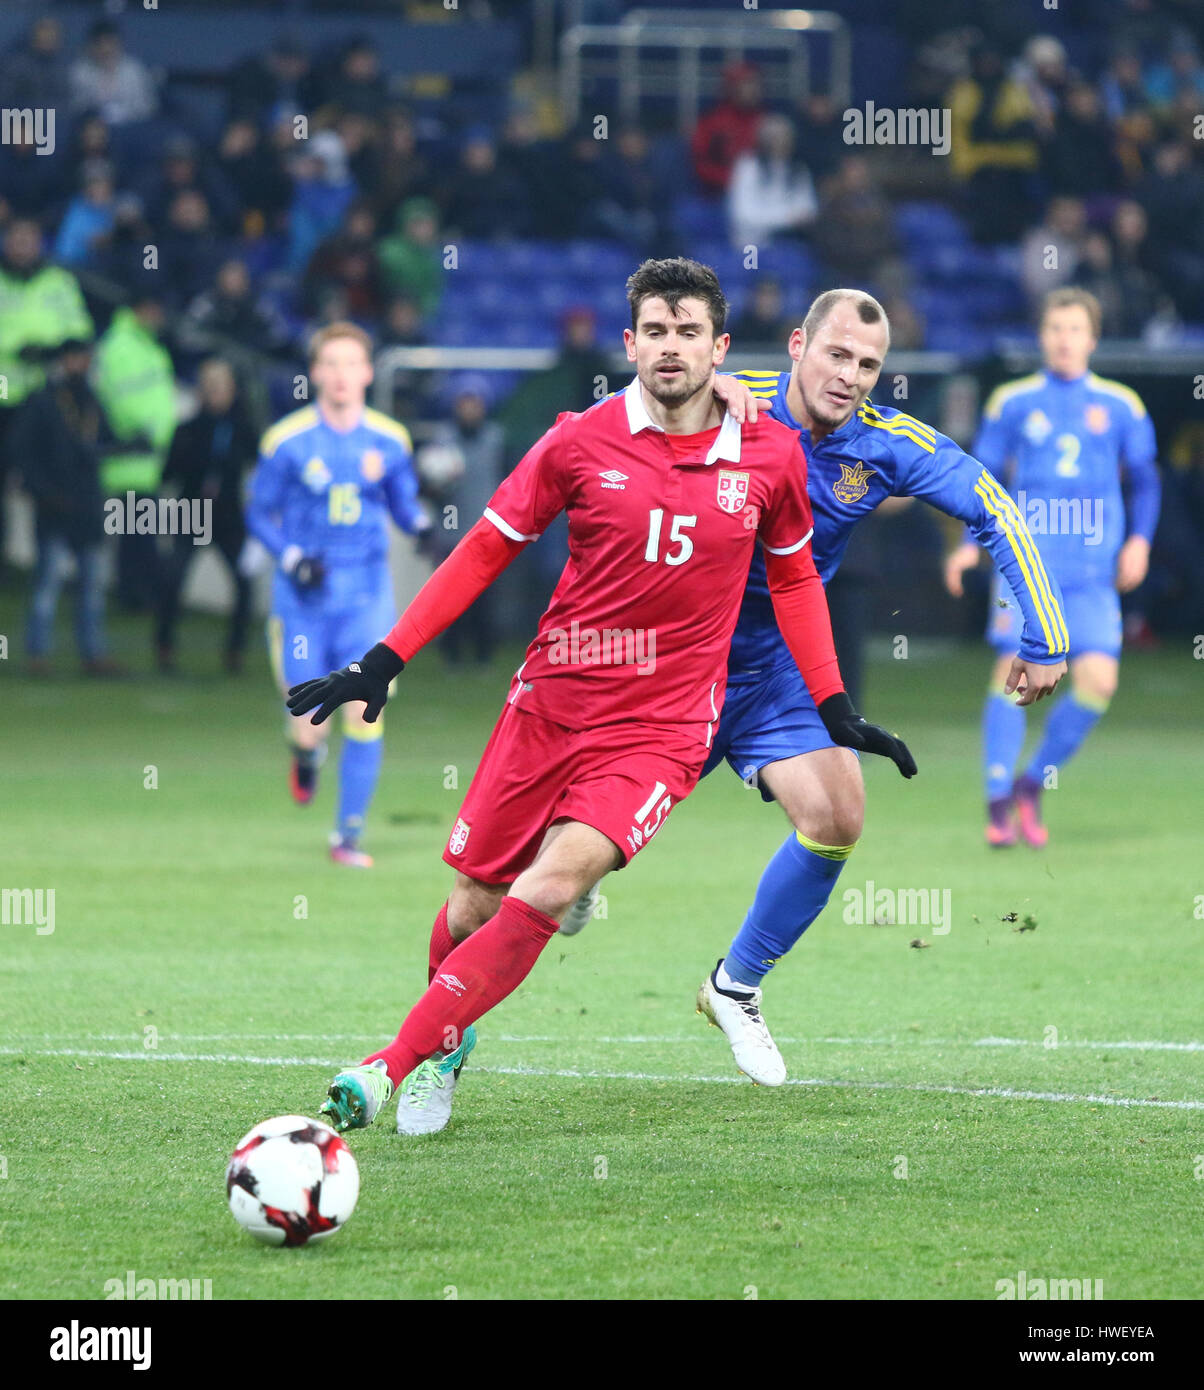 b46dc540996f Kharkiv, Ukraine - November 15, 2016  Nemanja Pejcinovic of Serbia (in Red